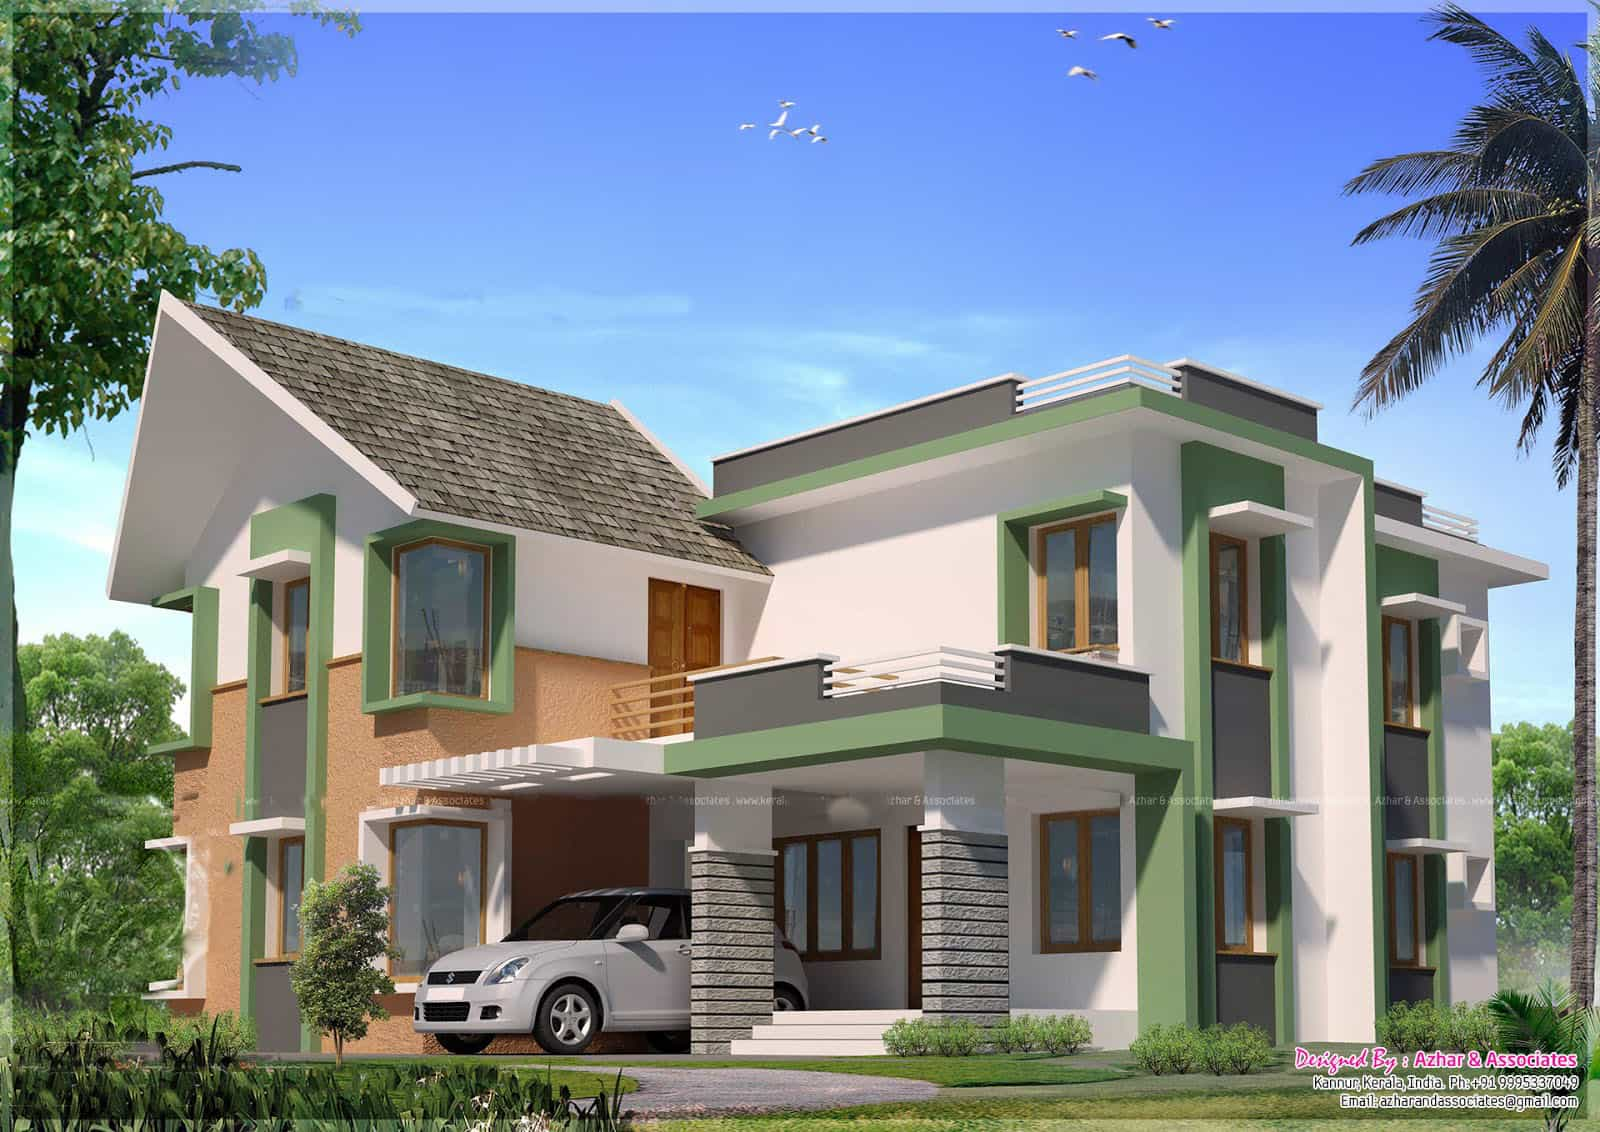 Kerala House Model Exterior Design At 2860 Sq Ft